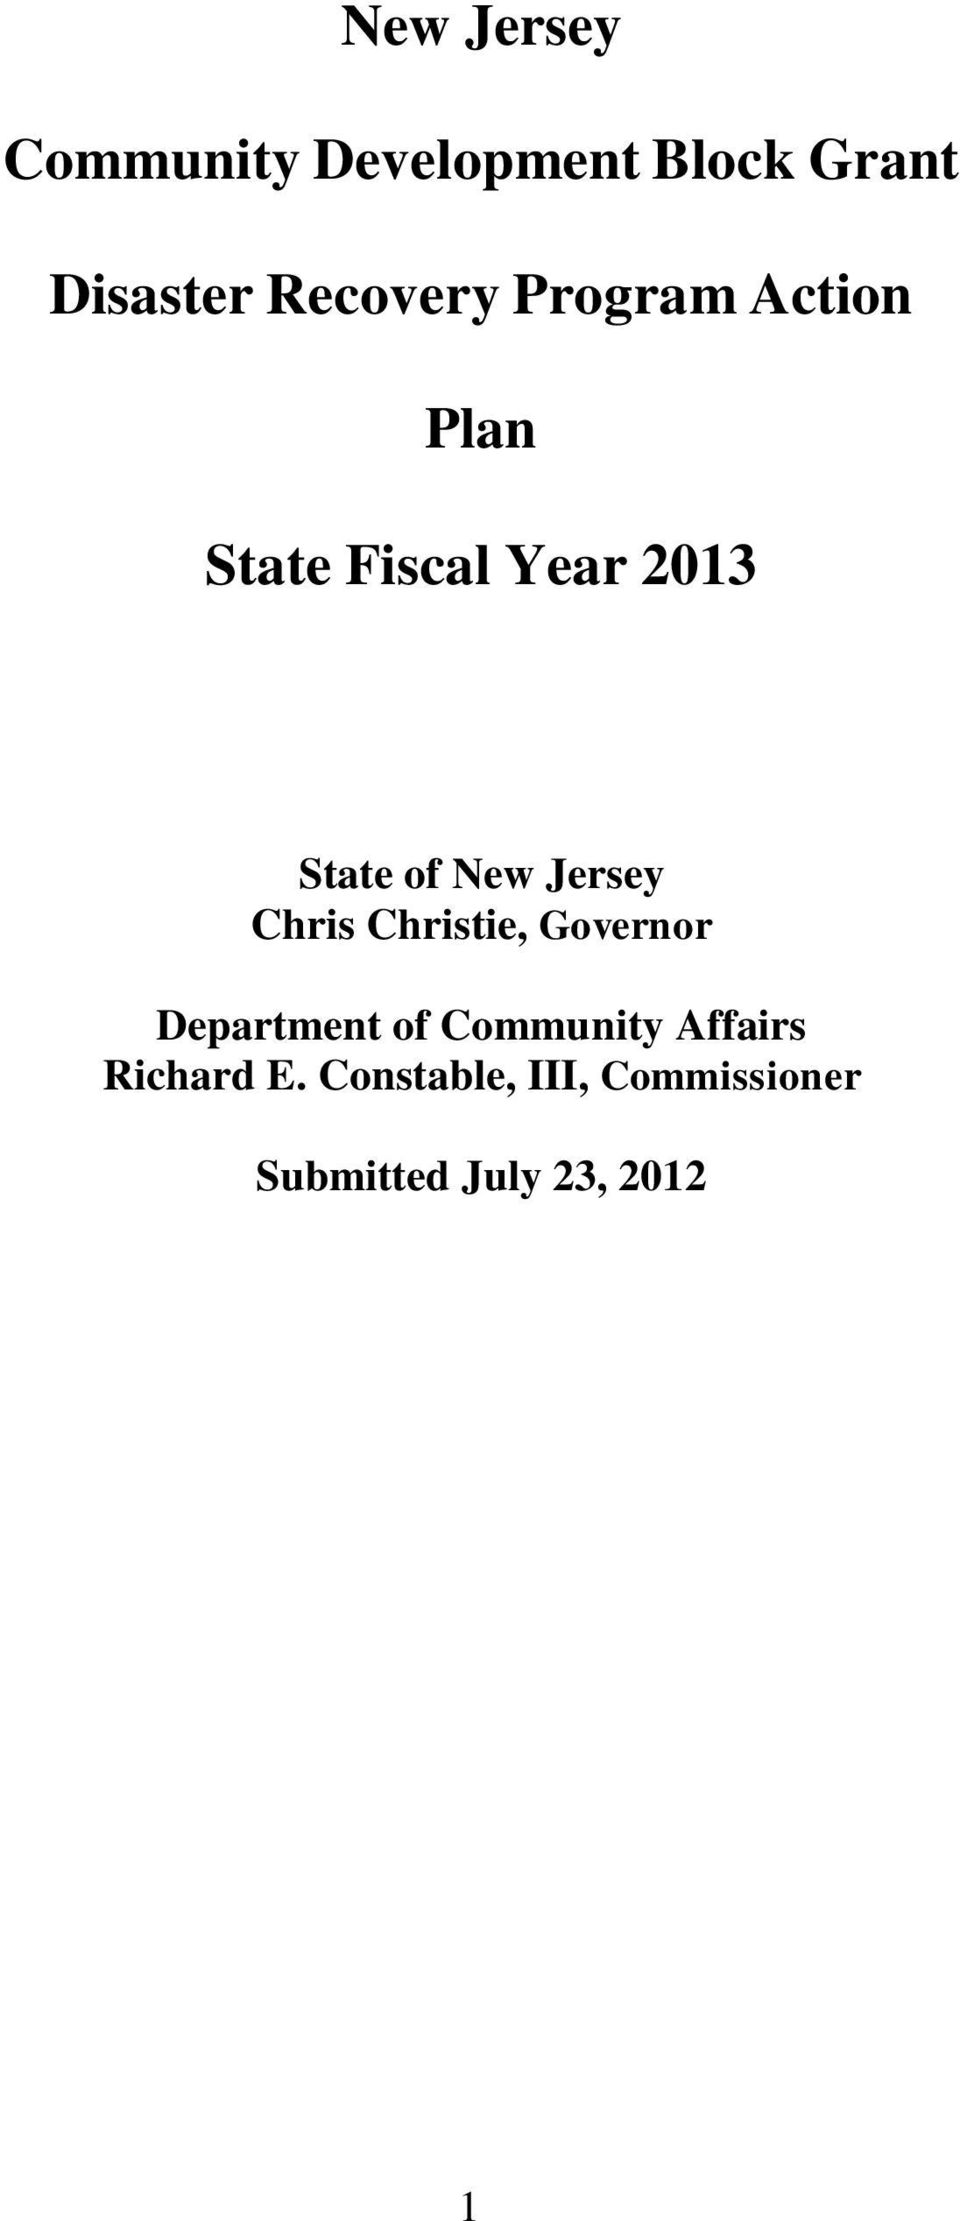 New Jersey Chris Christie, Governor Department of Community